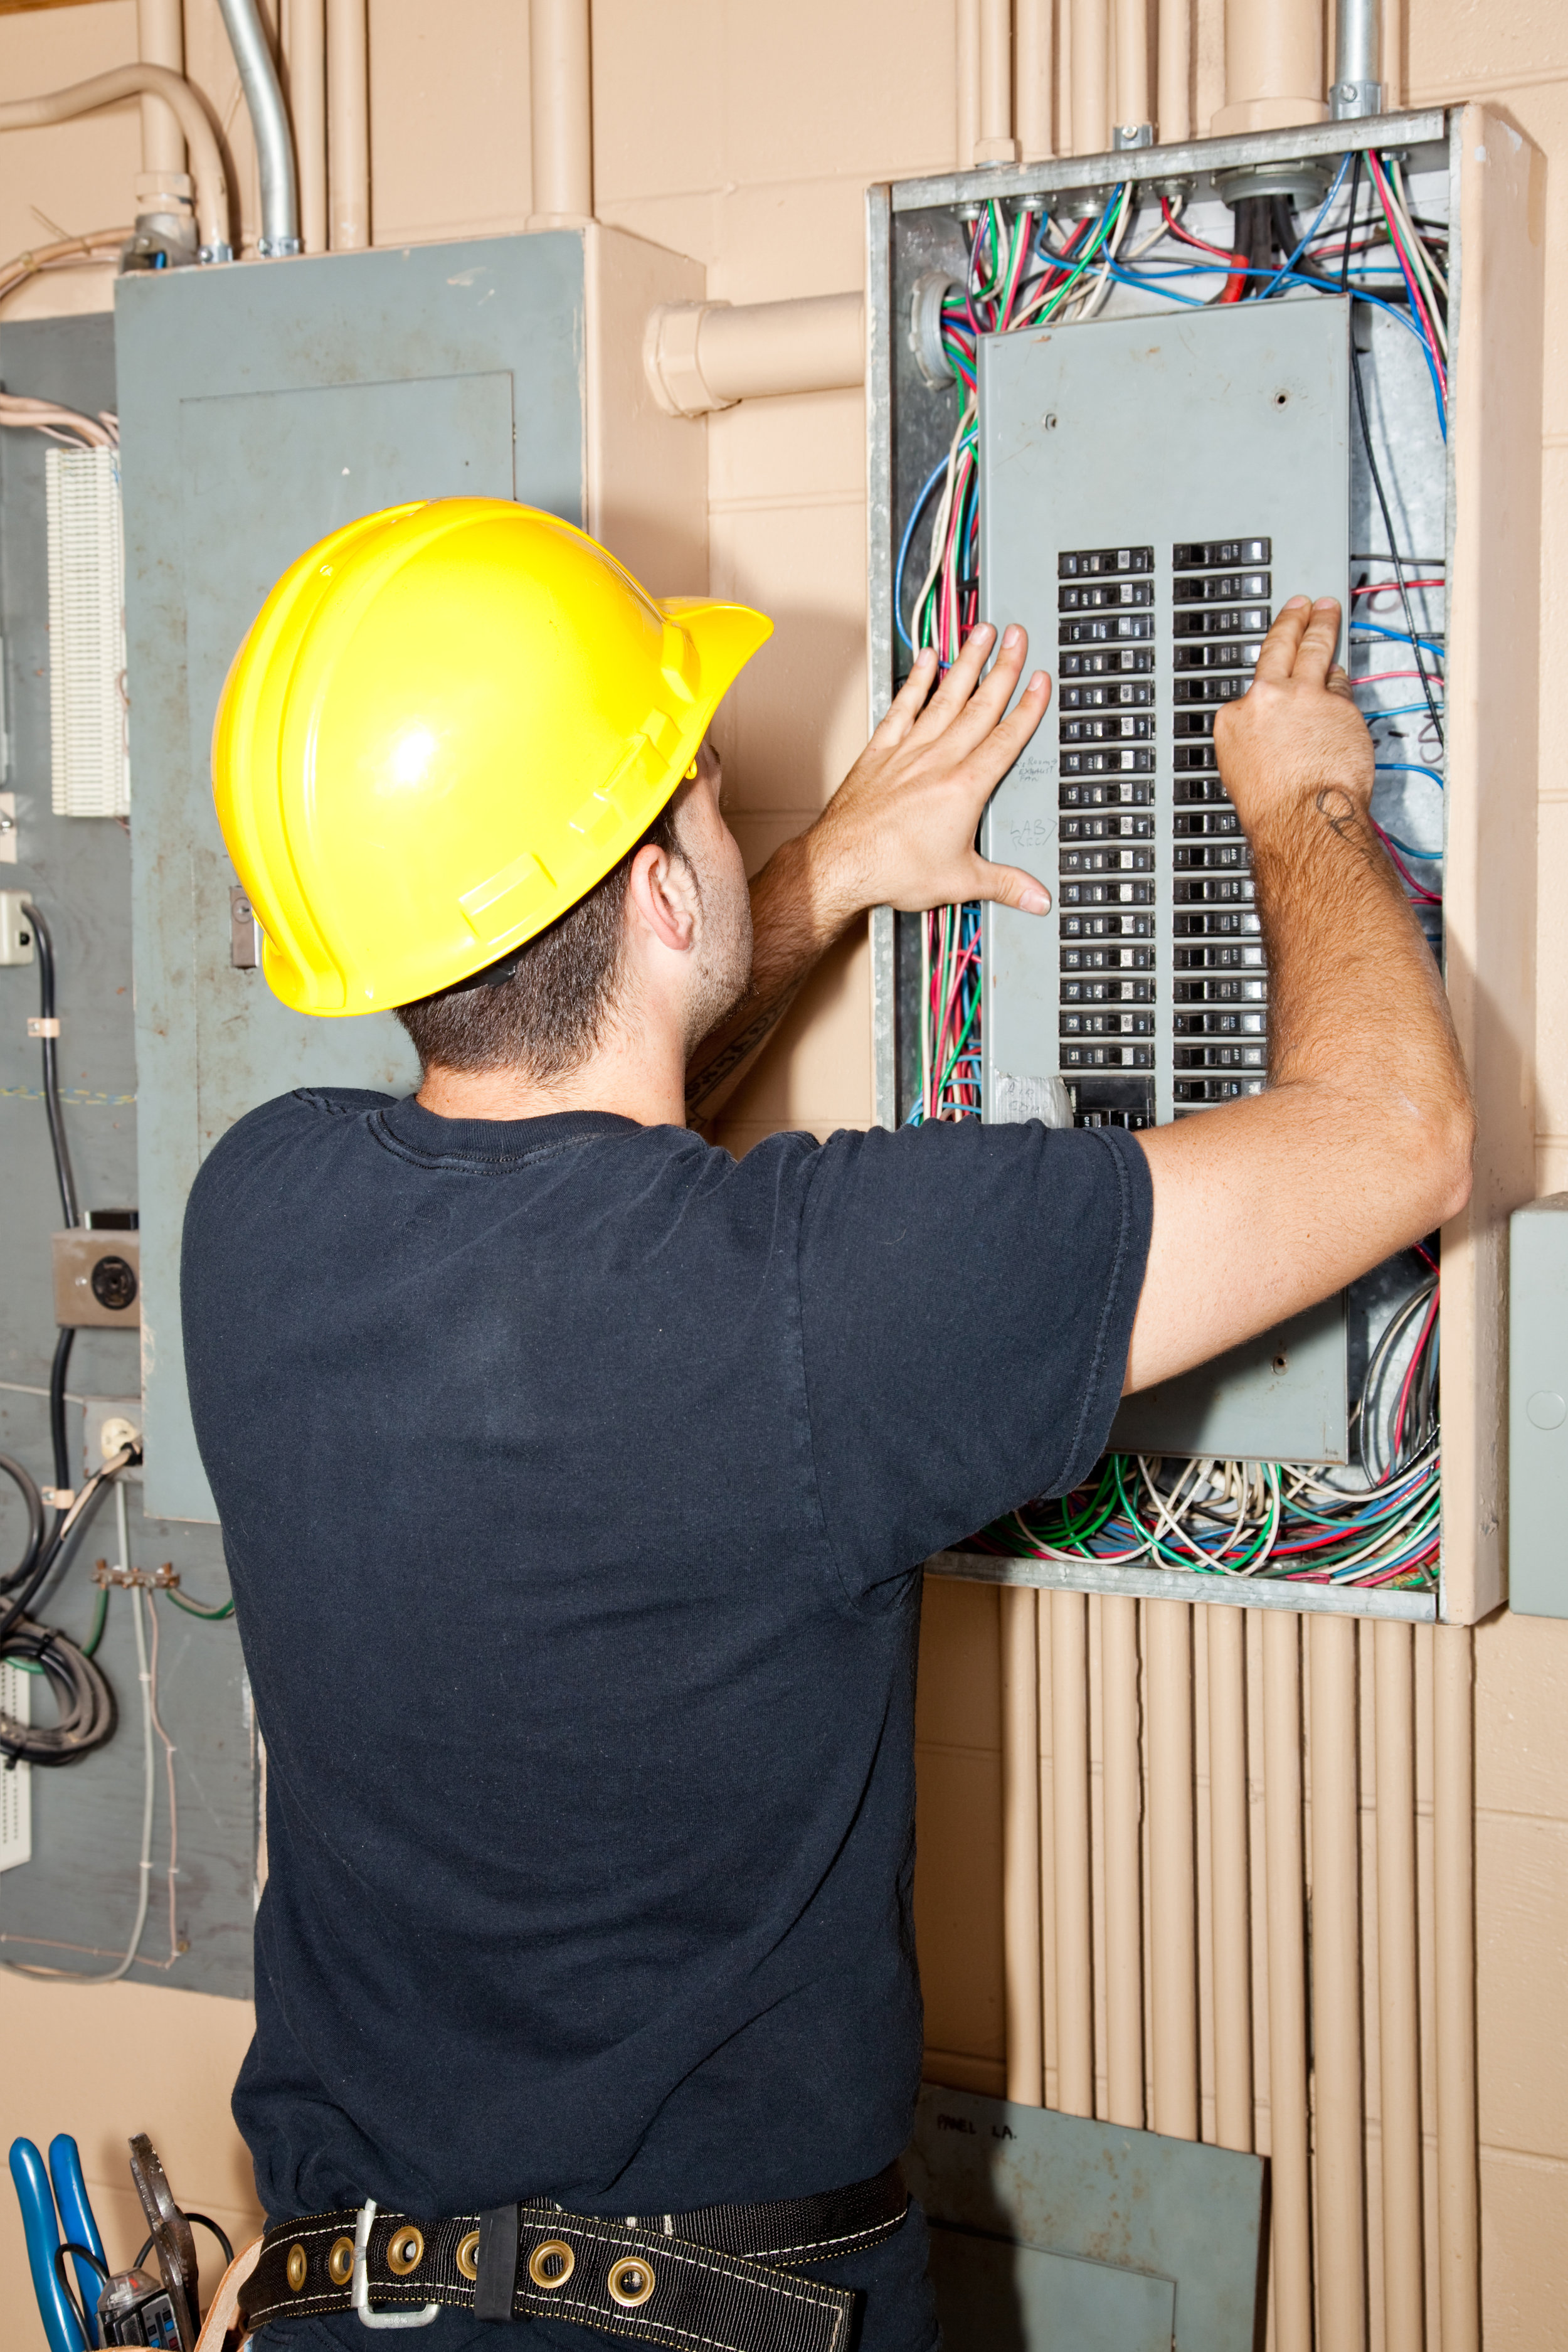 Electrical Inspection Sherwood Park AB | Electrical Inspection Edmonton AB | Electrical Inspection Fort Saskatchewan AB | Electrical Inspection St. Albert AB